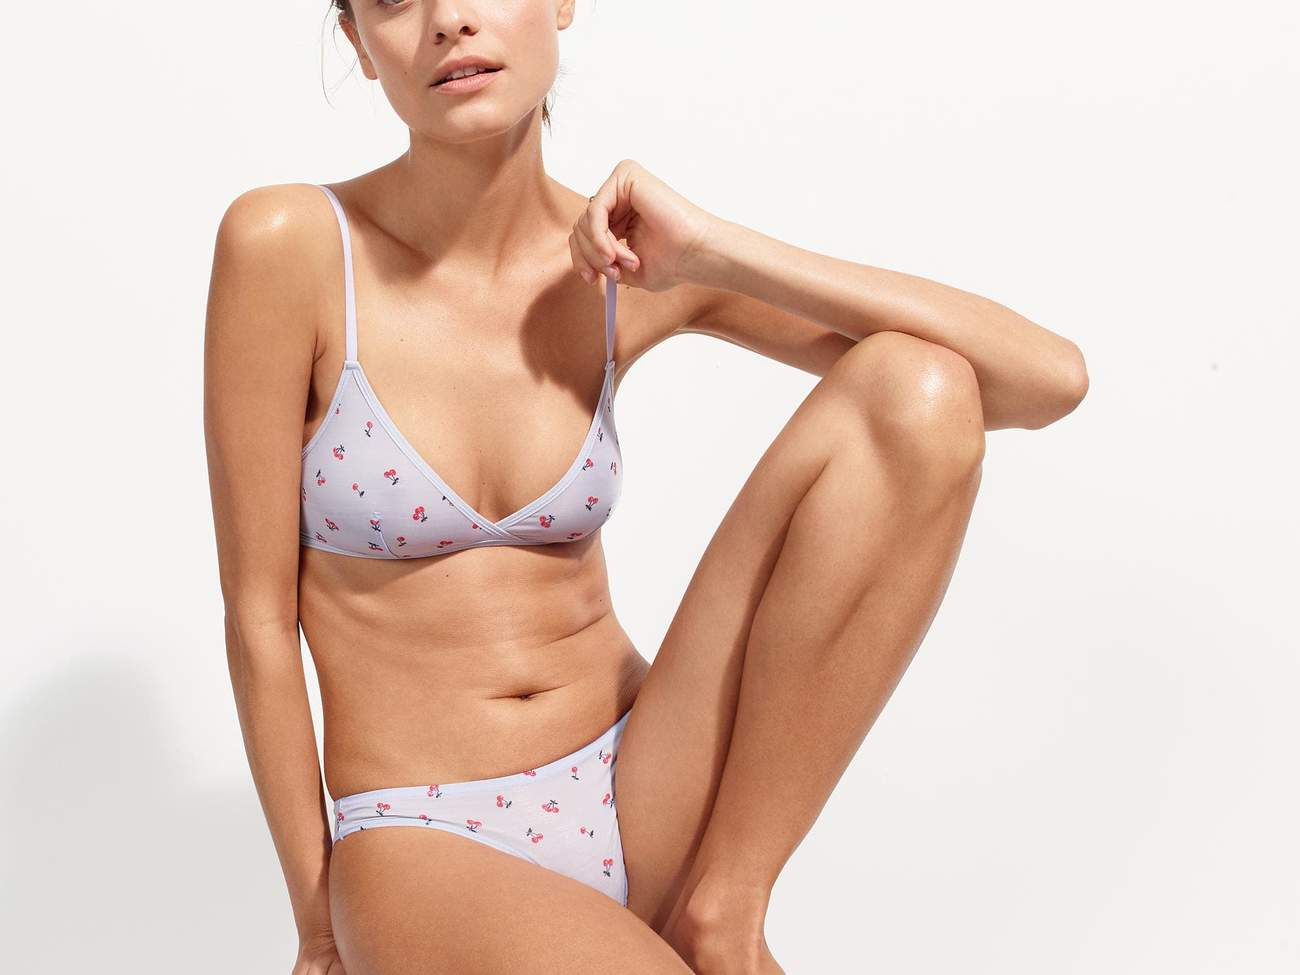 jcrew-intimates-collection